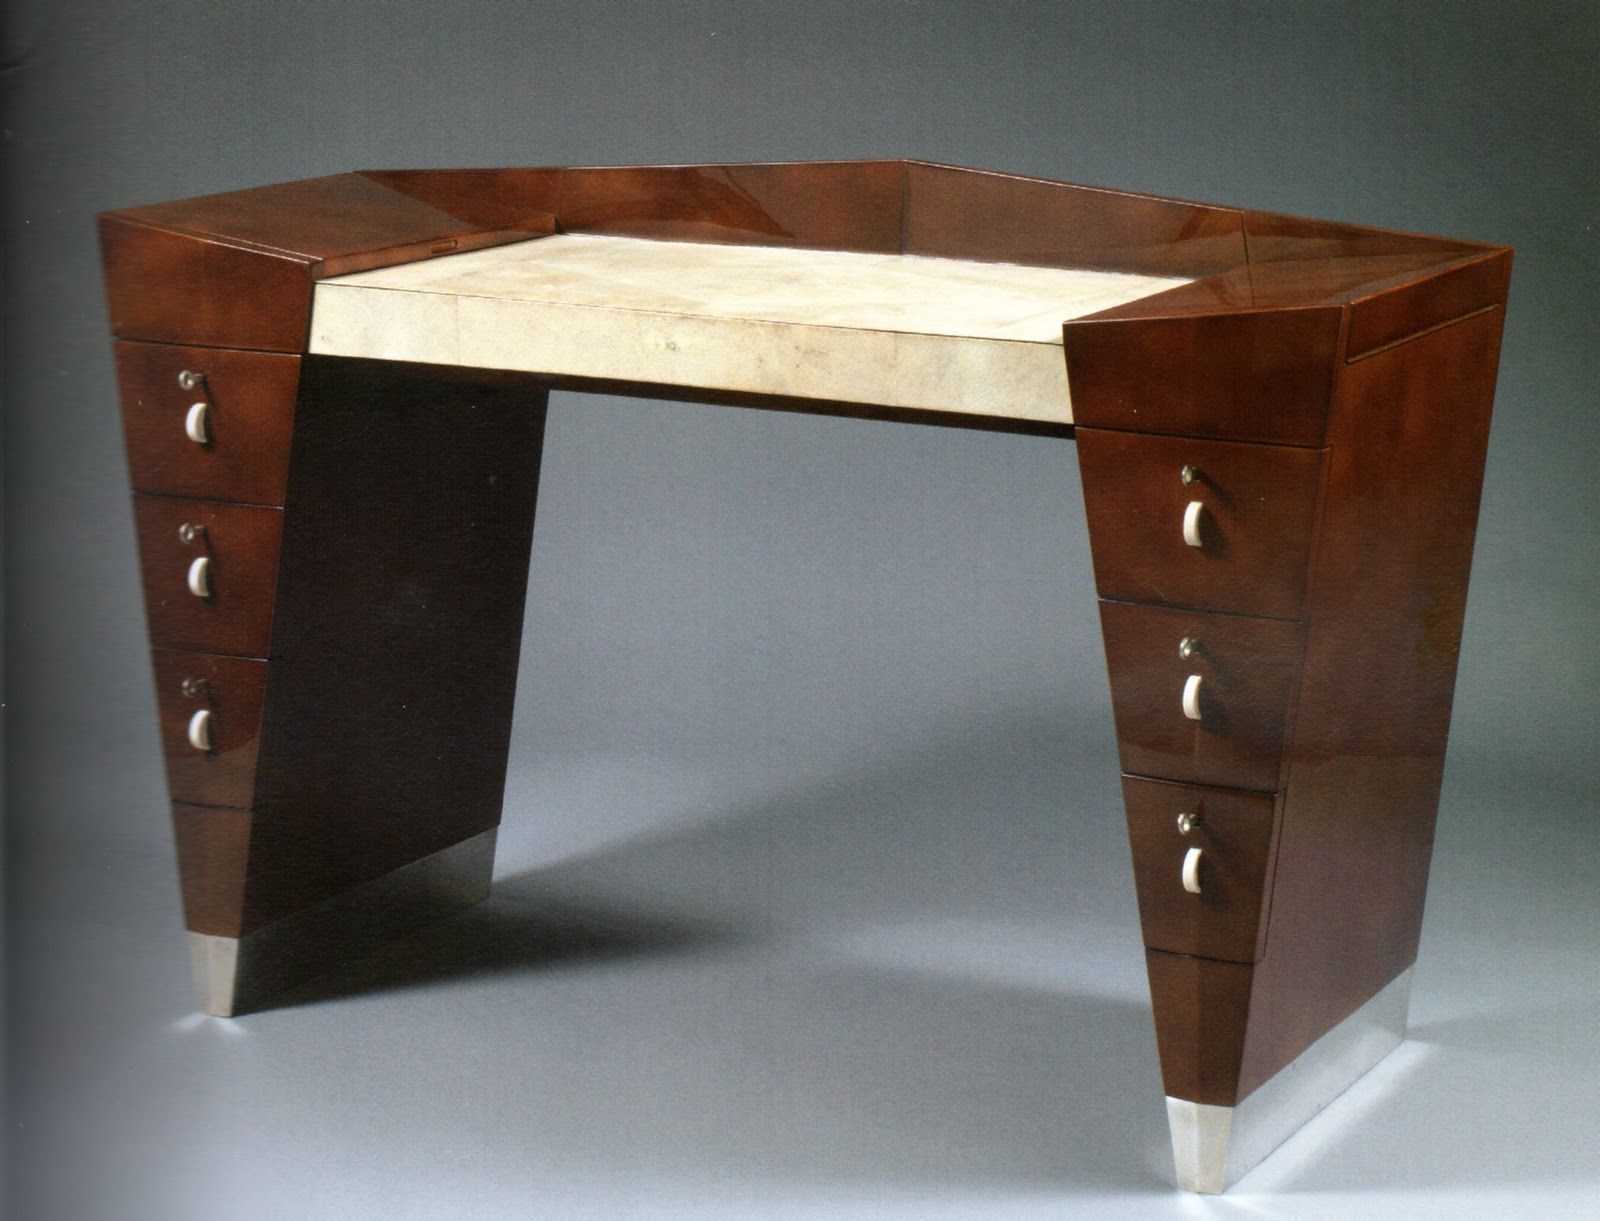 cubist desk 1930 leon jallot furniture finds of the day pinterest desks park avenue and. Black Bedroom Furniture Sets. Home Design Ideas